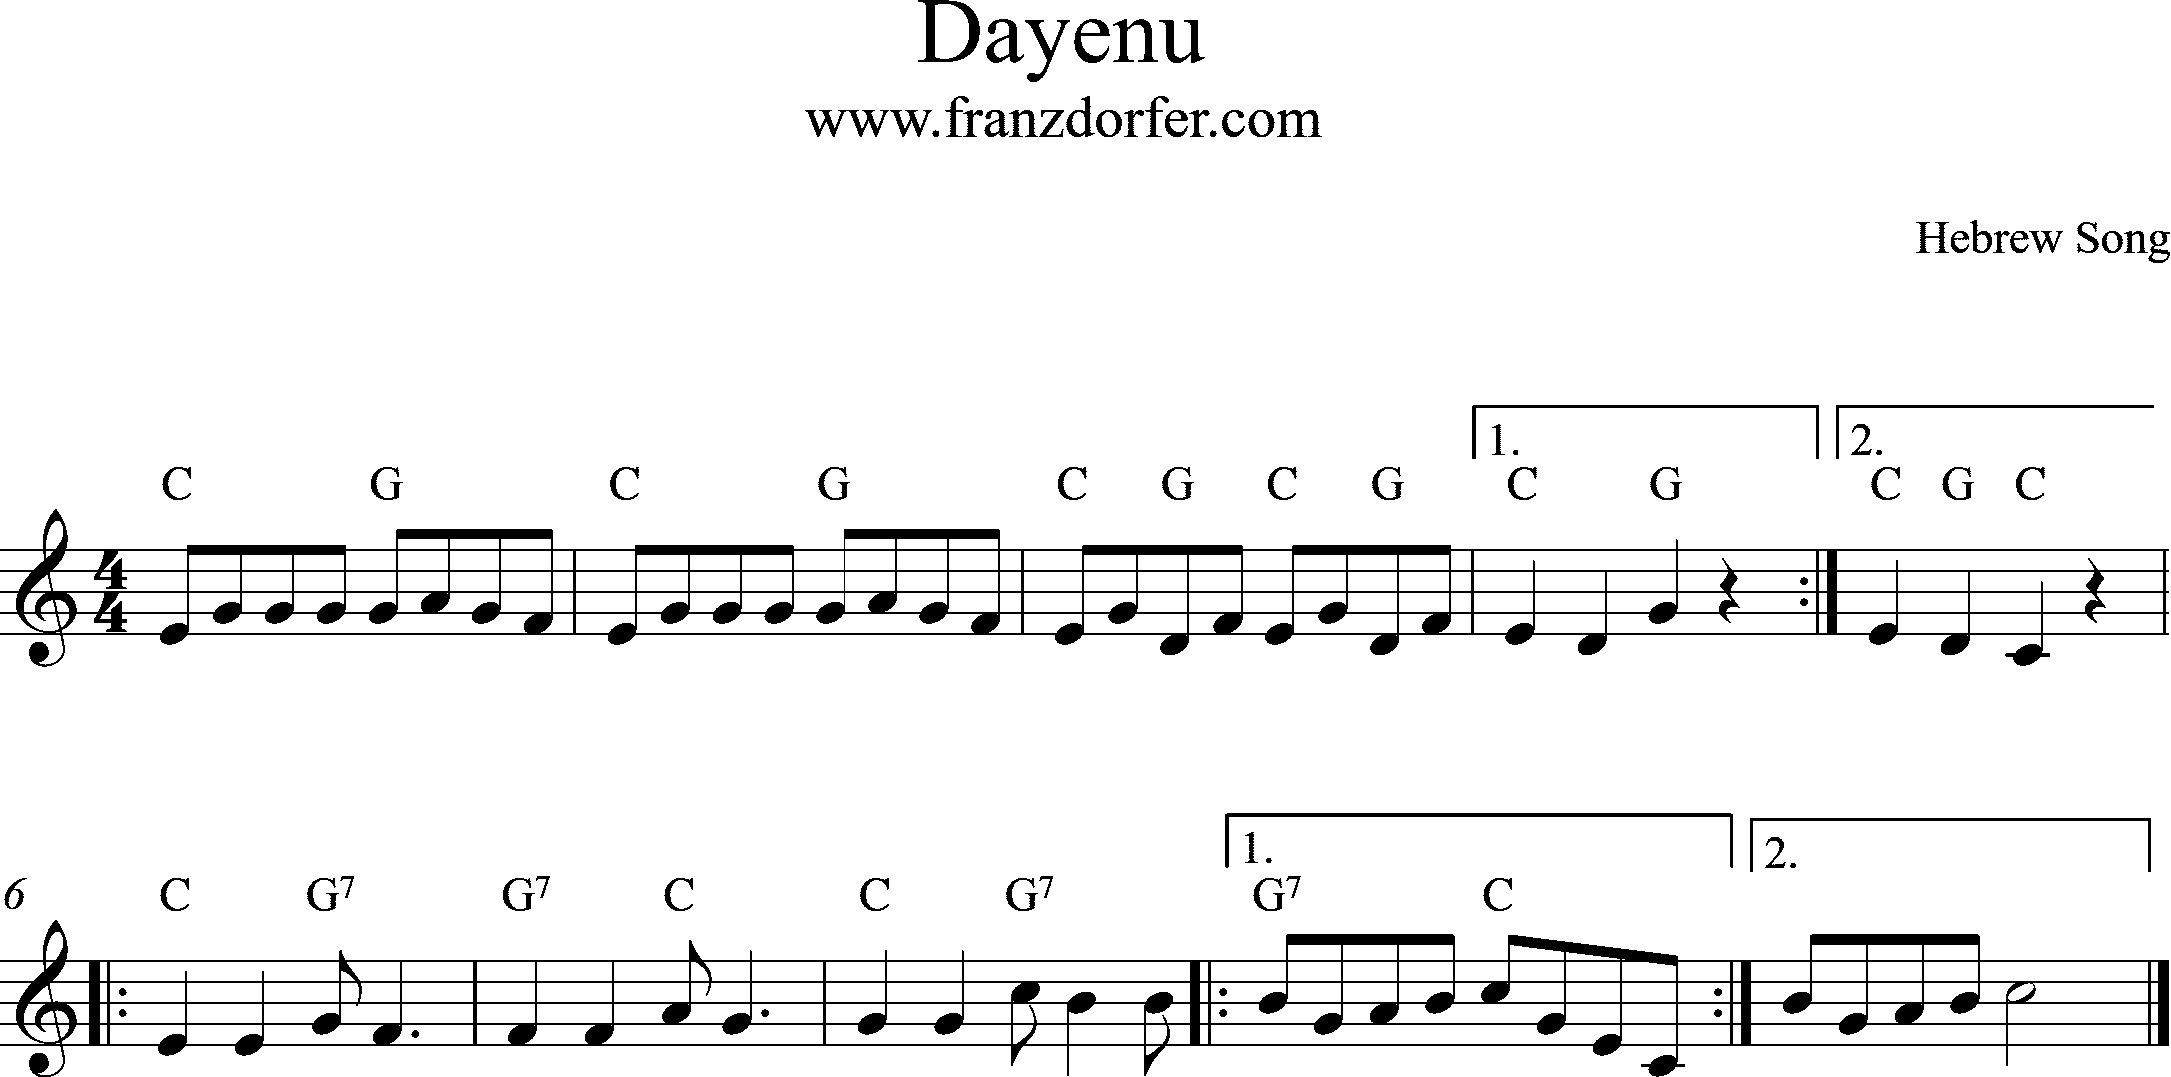 Sheetmusic, C-Major- Dayenu